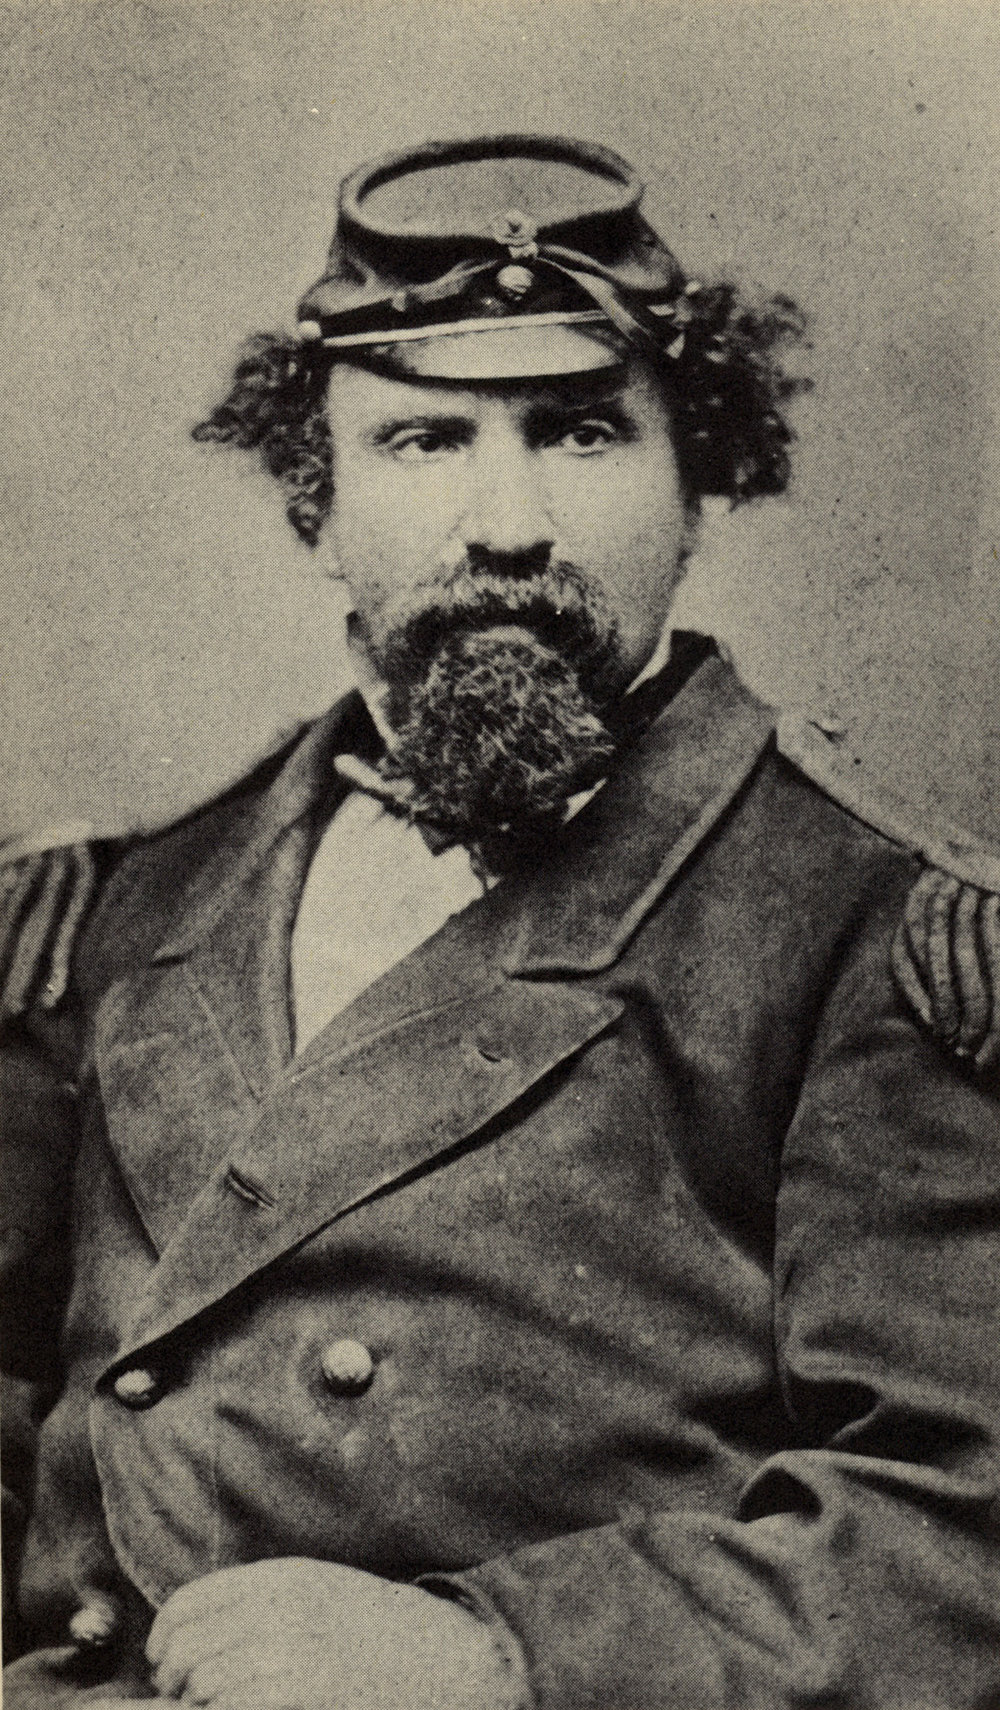 "Emperor Norton, between spring 1871 and spring 1872.  From carte de visite by Tuttle & Johnson studio, 523 Kearny Street, ""Heliographic Artists."" Collection of the California Historical Society."